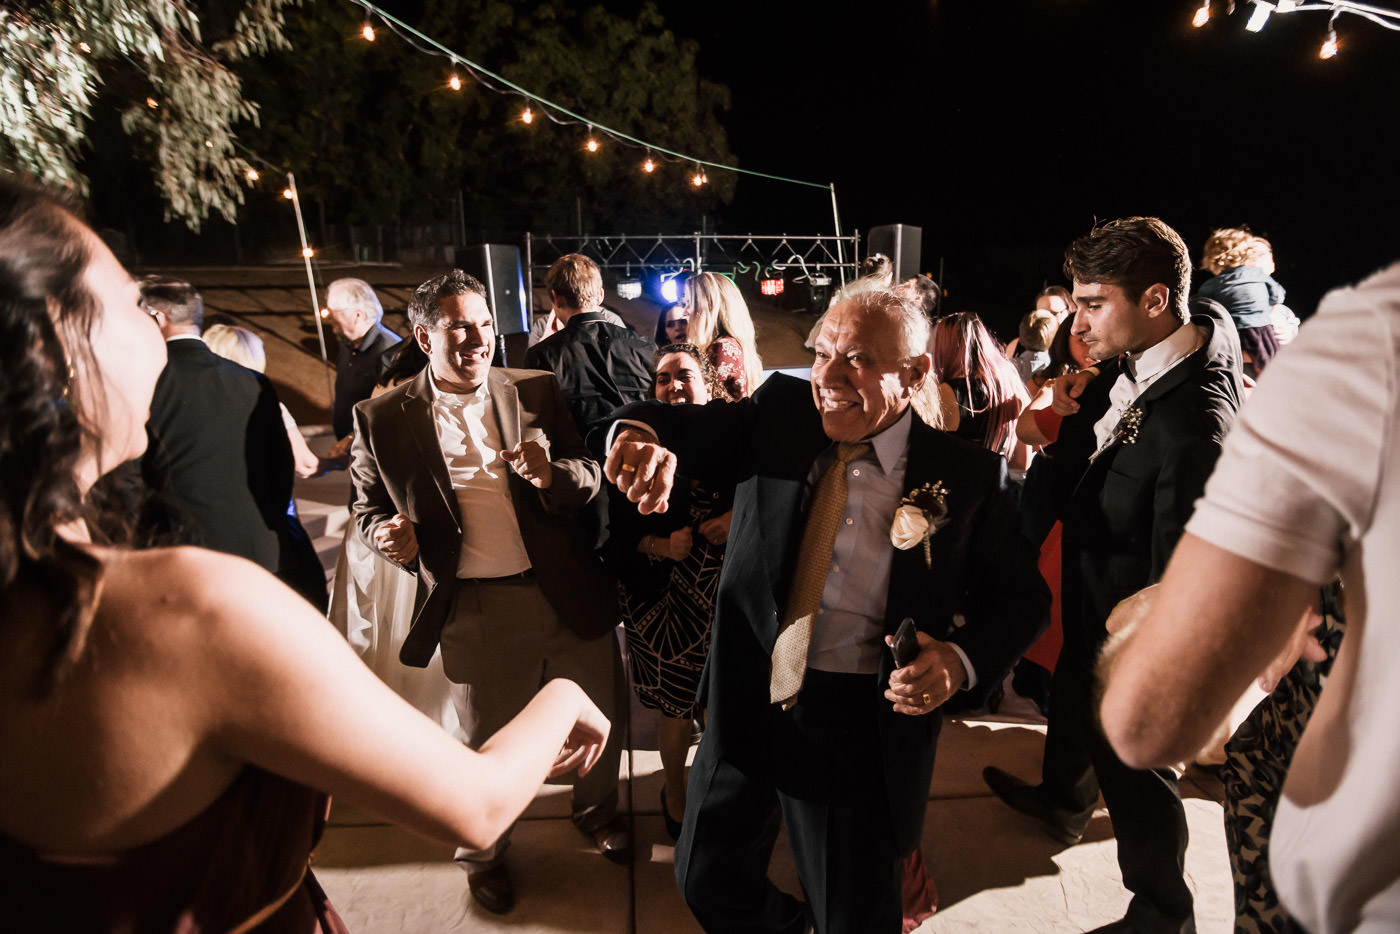 Grandpa gets his grove on at this Temecula wedding recepetion.